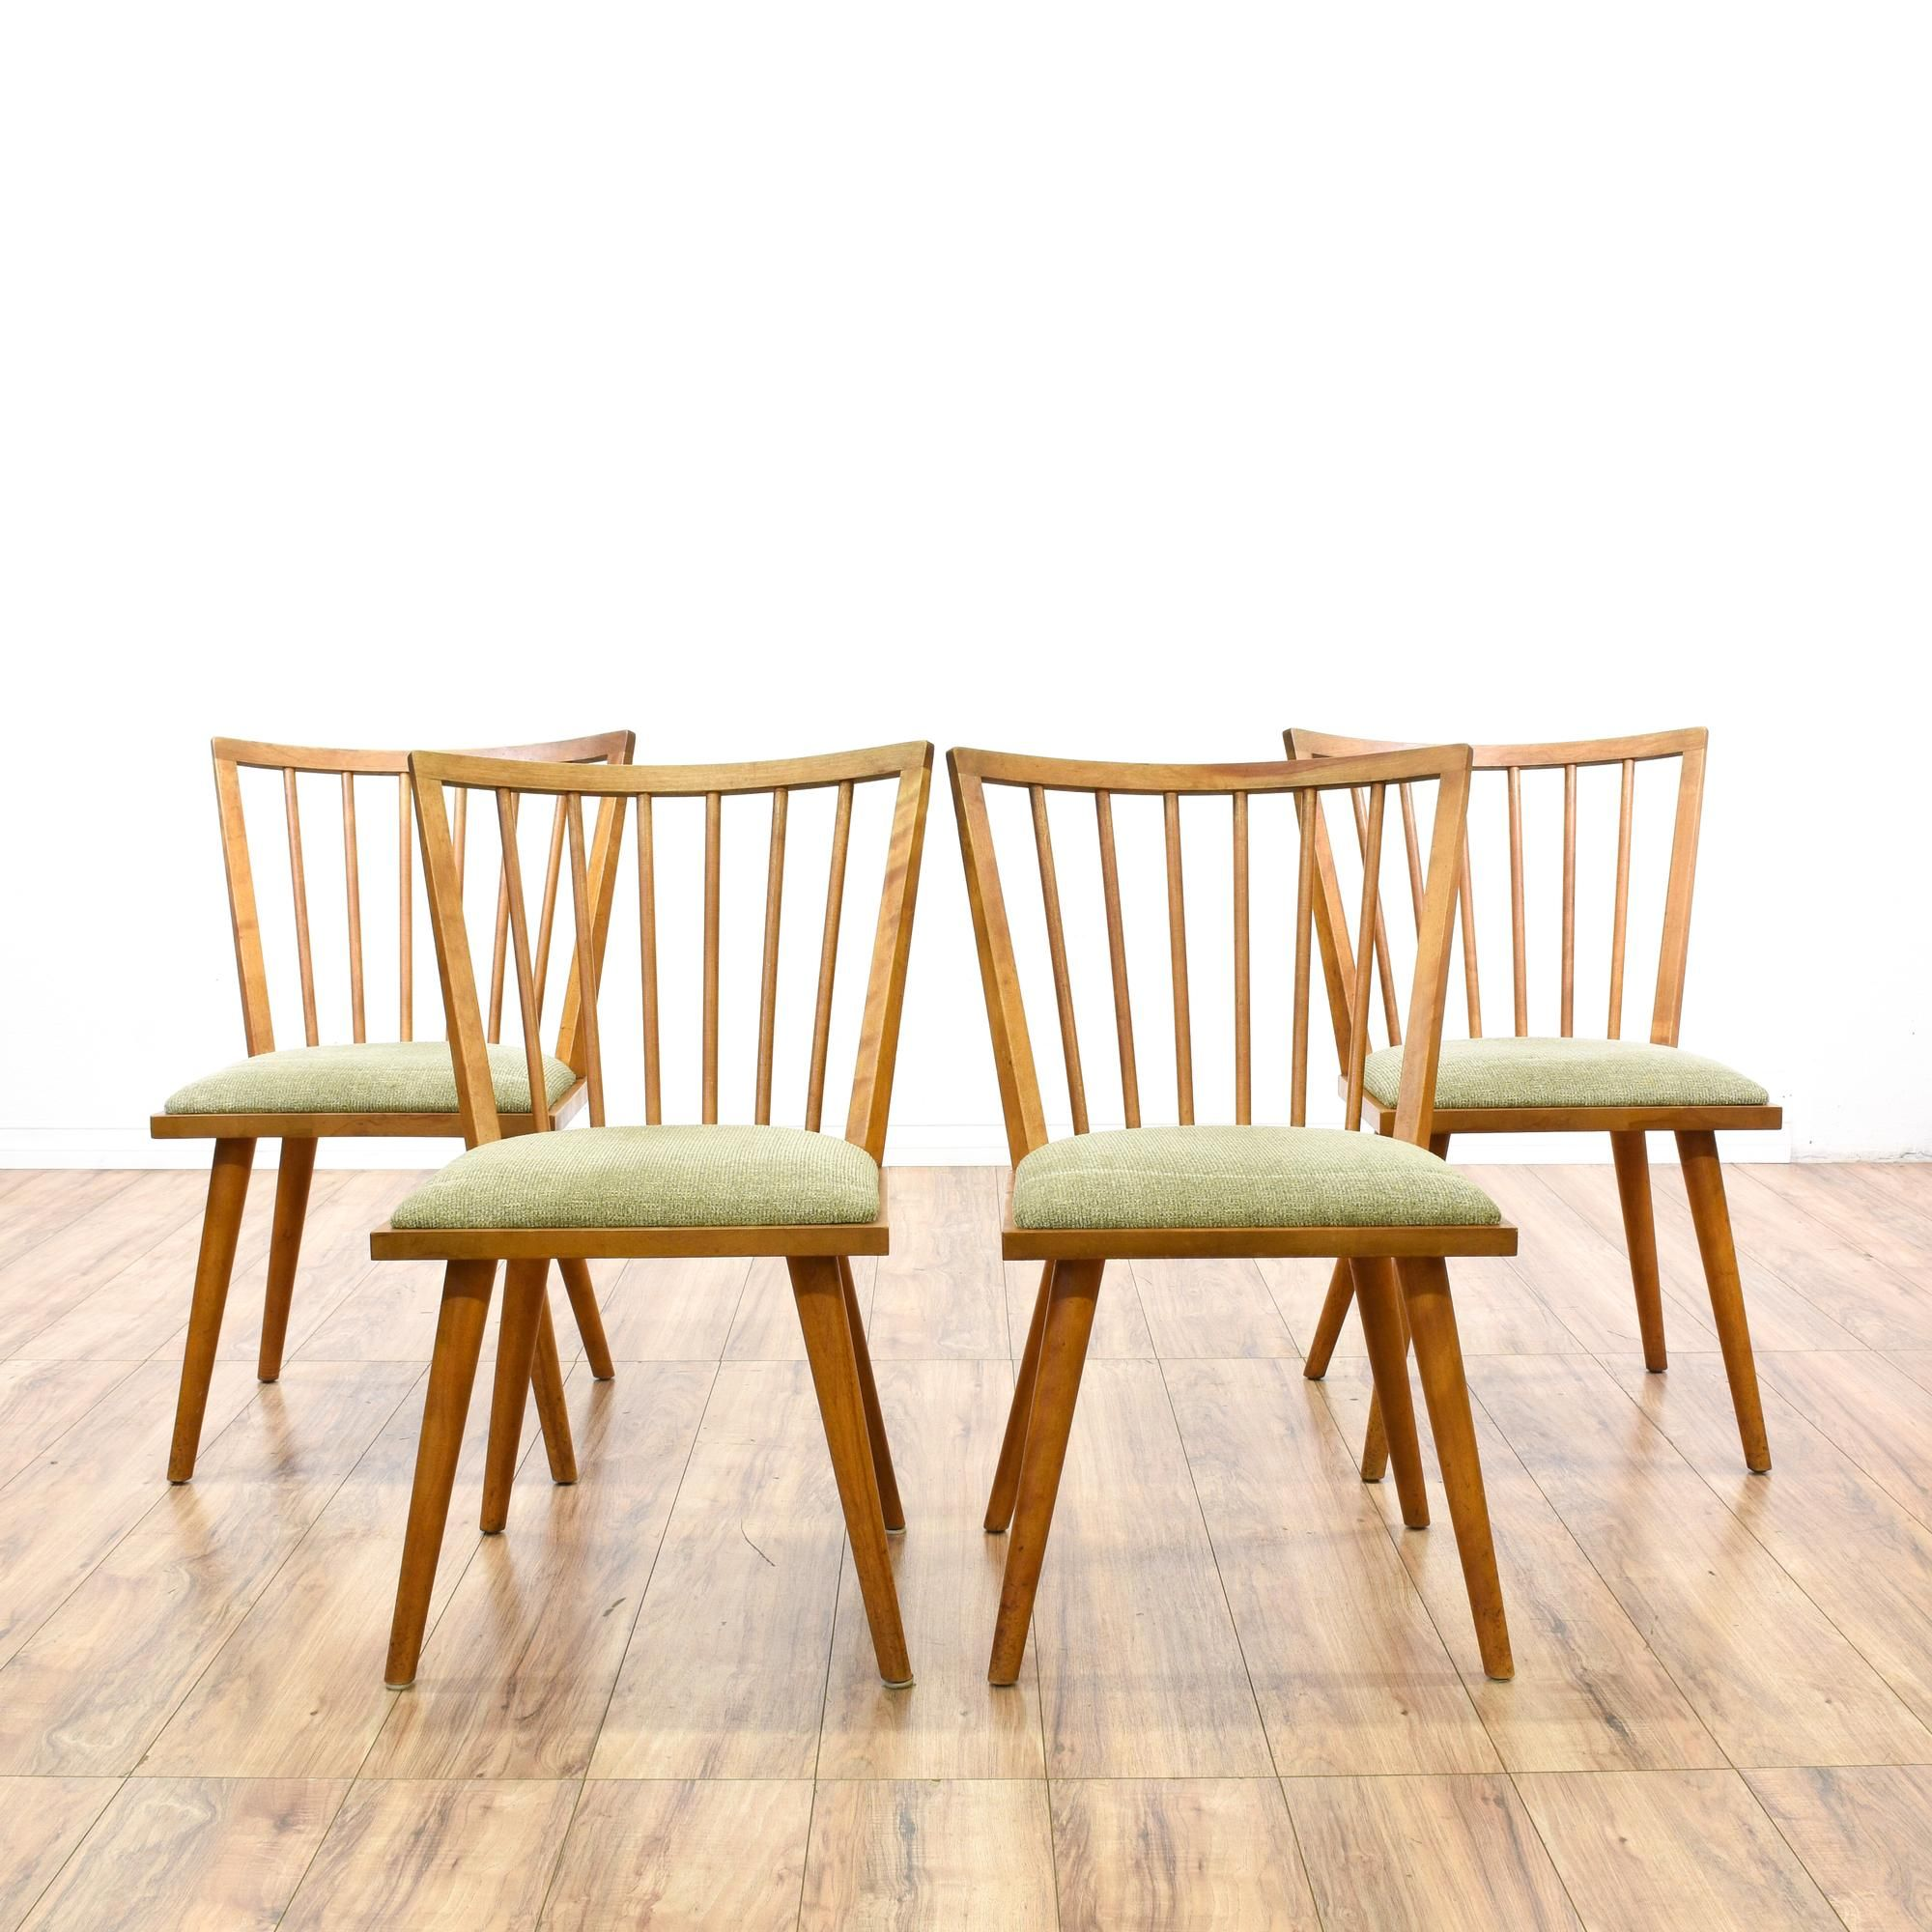 These Russel Wright For Conant Ball Dining Chairs Are Featured